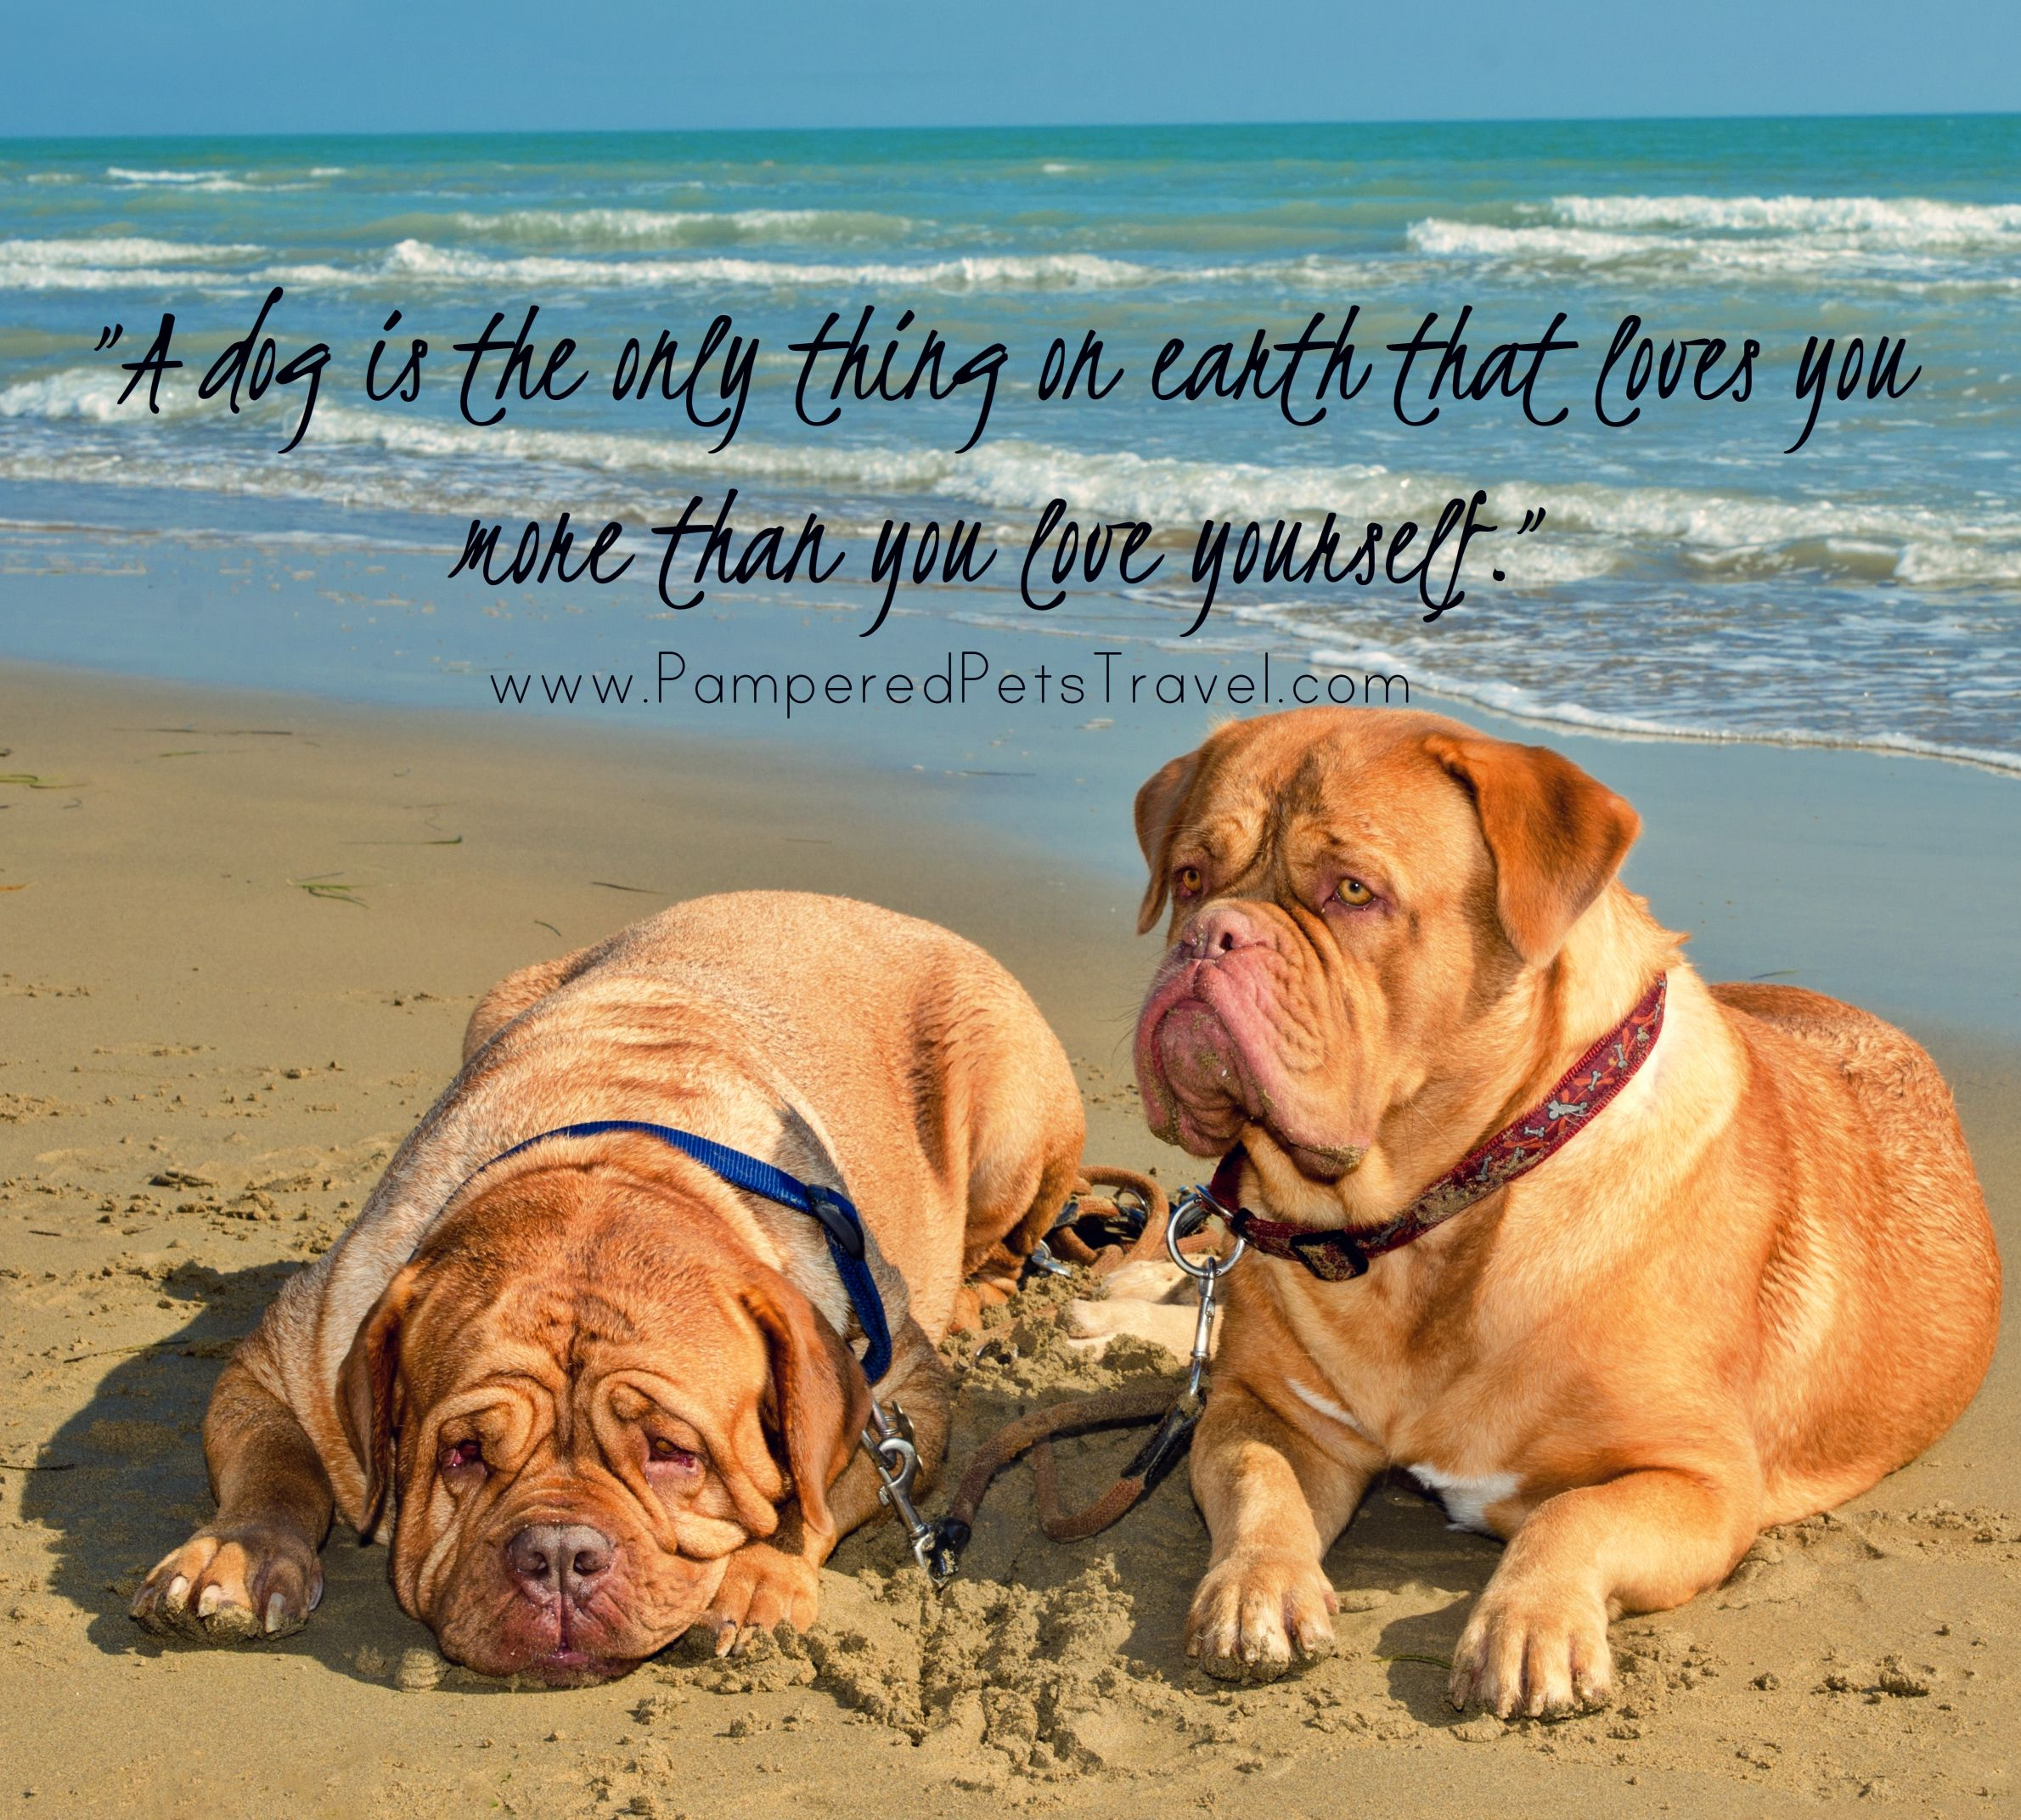 Www Pamperedpetstravel Com Dog Quotes Travel Trip Traveling Pettravel Dog Dogs Puppy Puppies Pet Pets Cute Fun Funny Dogs Dog Quotes Pet Travel